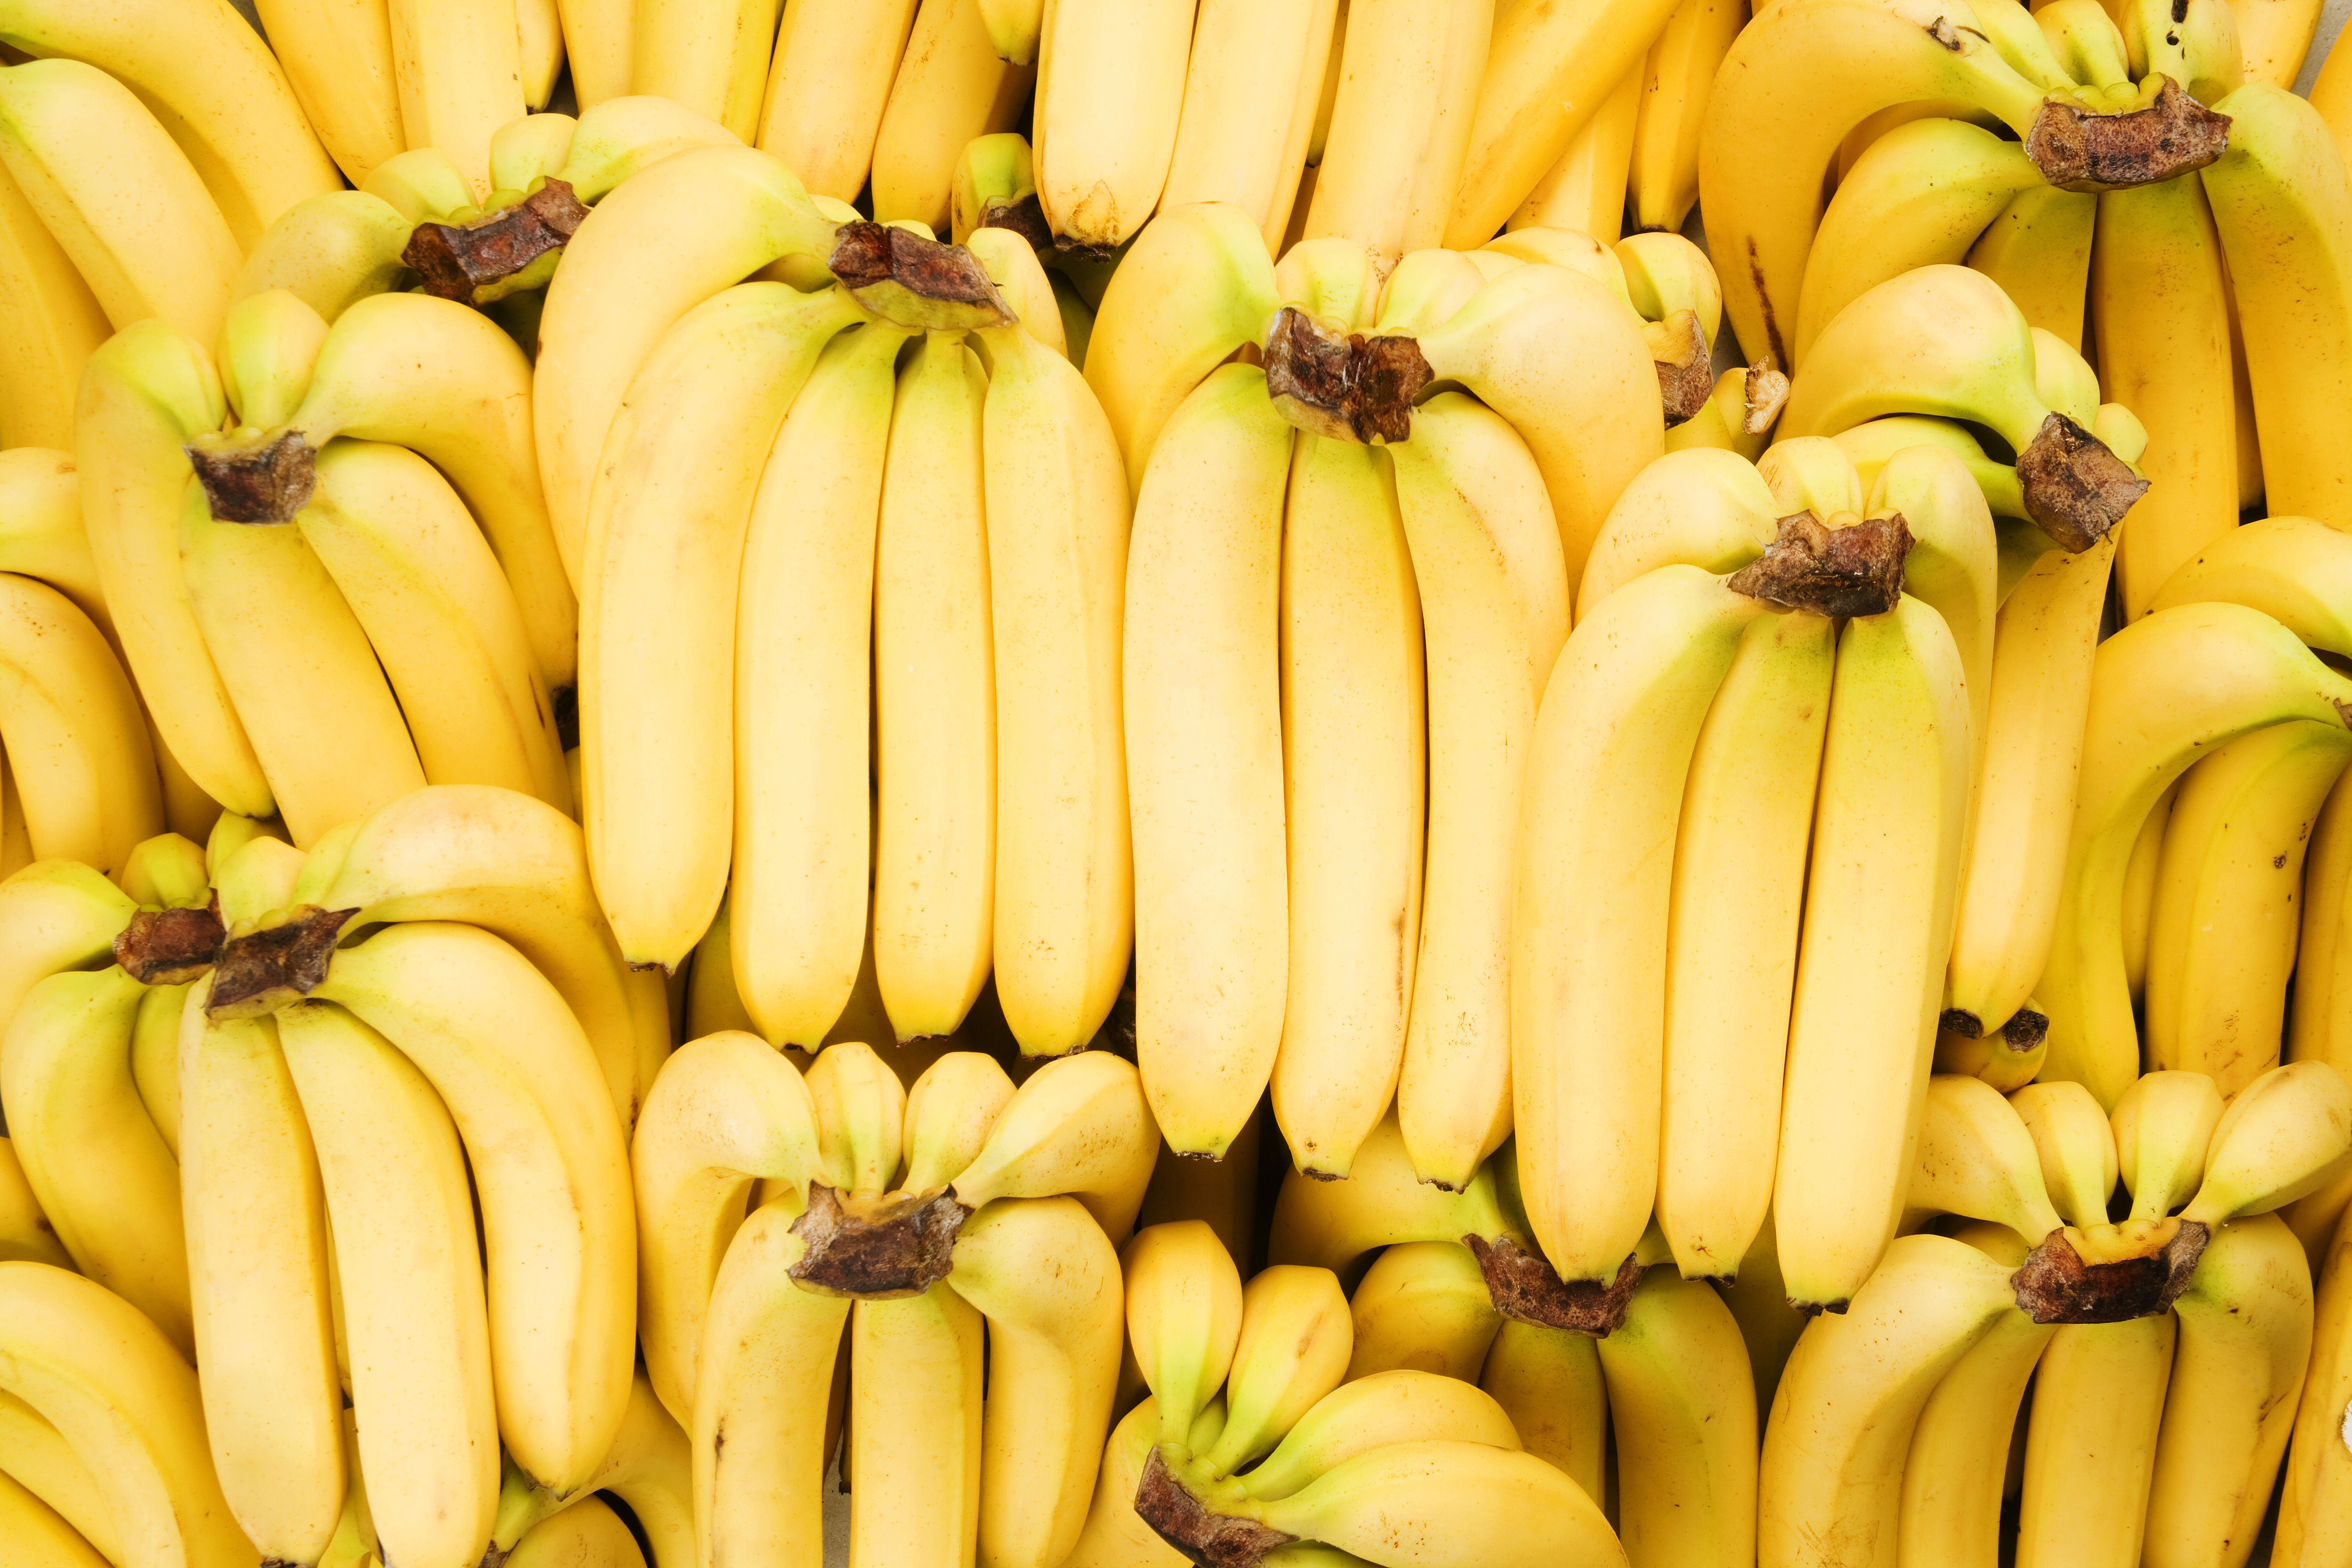 Scientist Racing To Save The Banana From Extinction